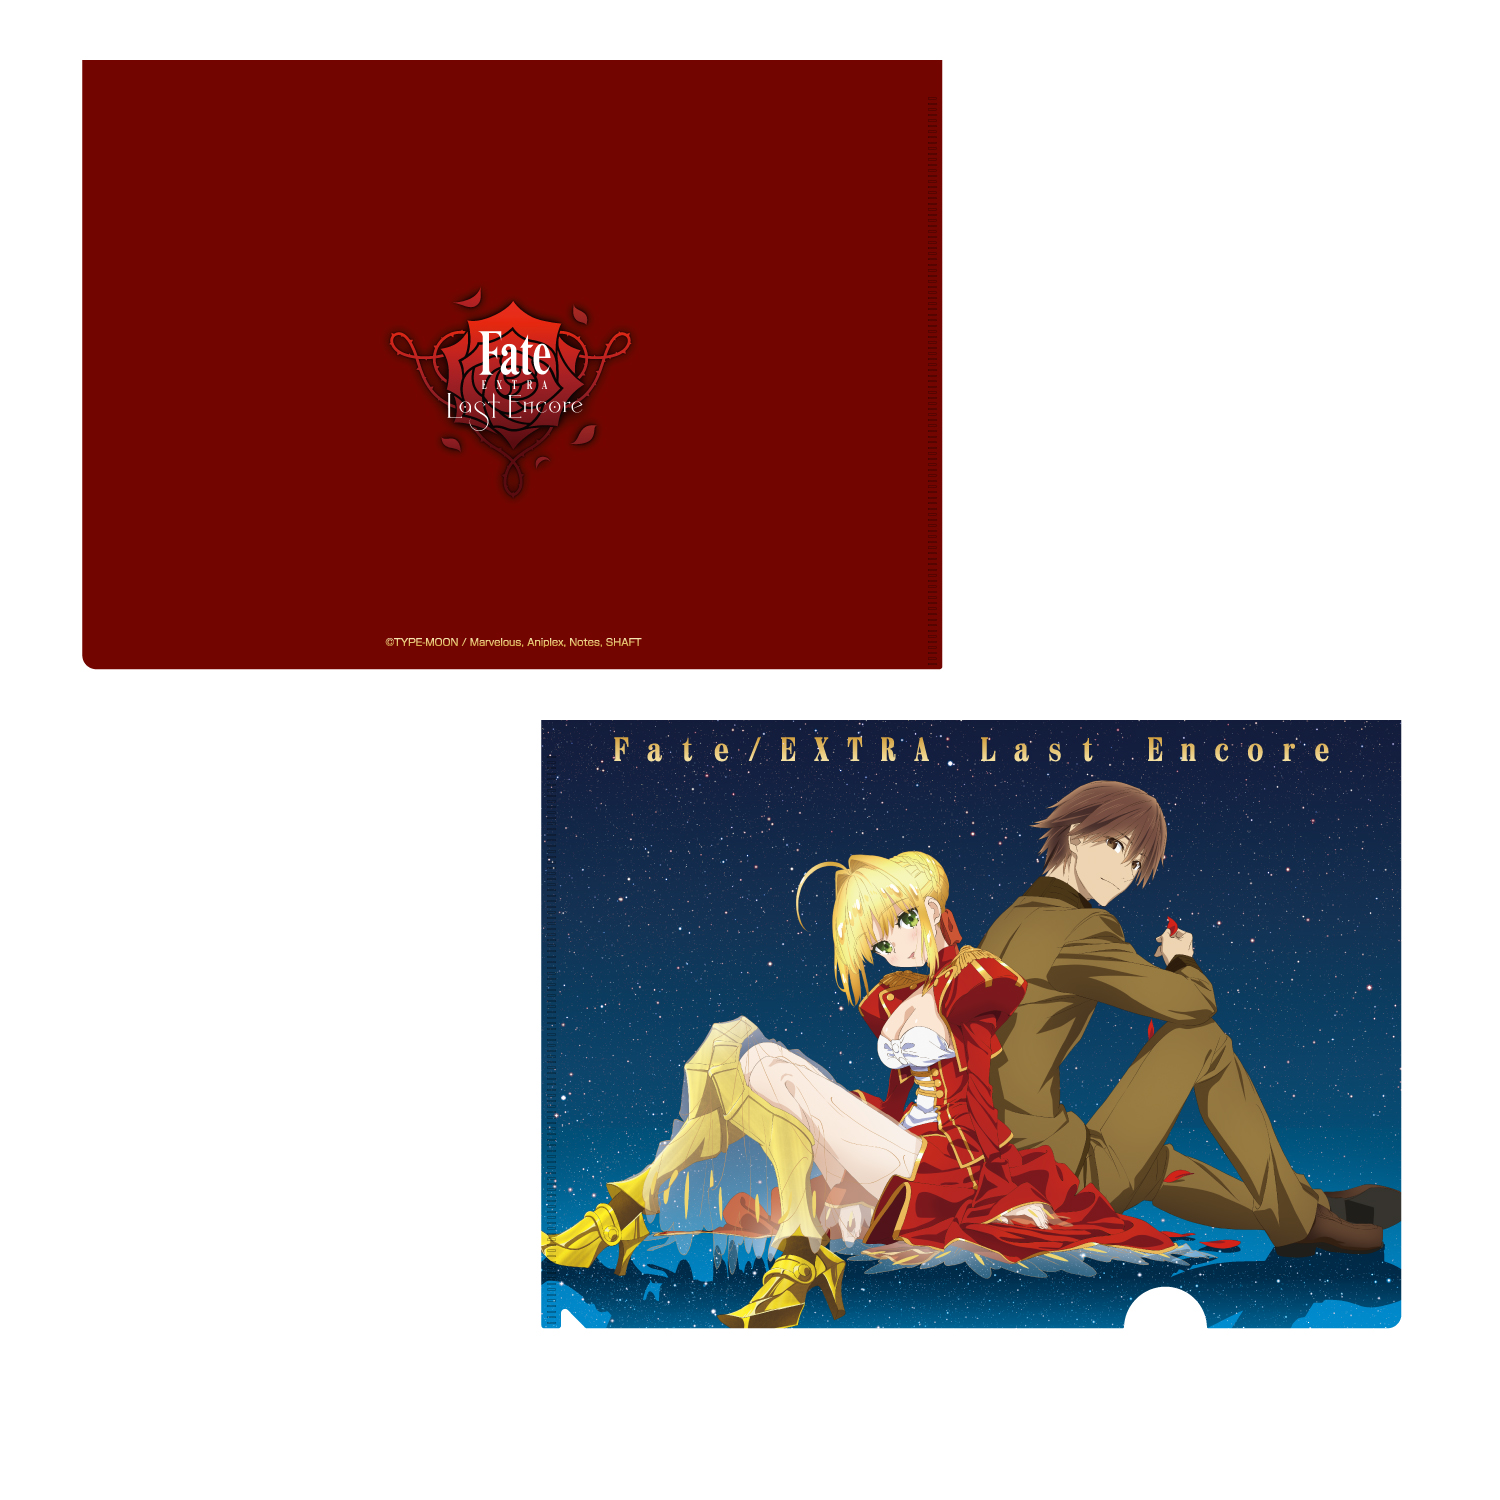 Fate/EXTRA Last Encore ツリービレッジオリジナル A4クリアファイル